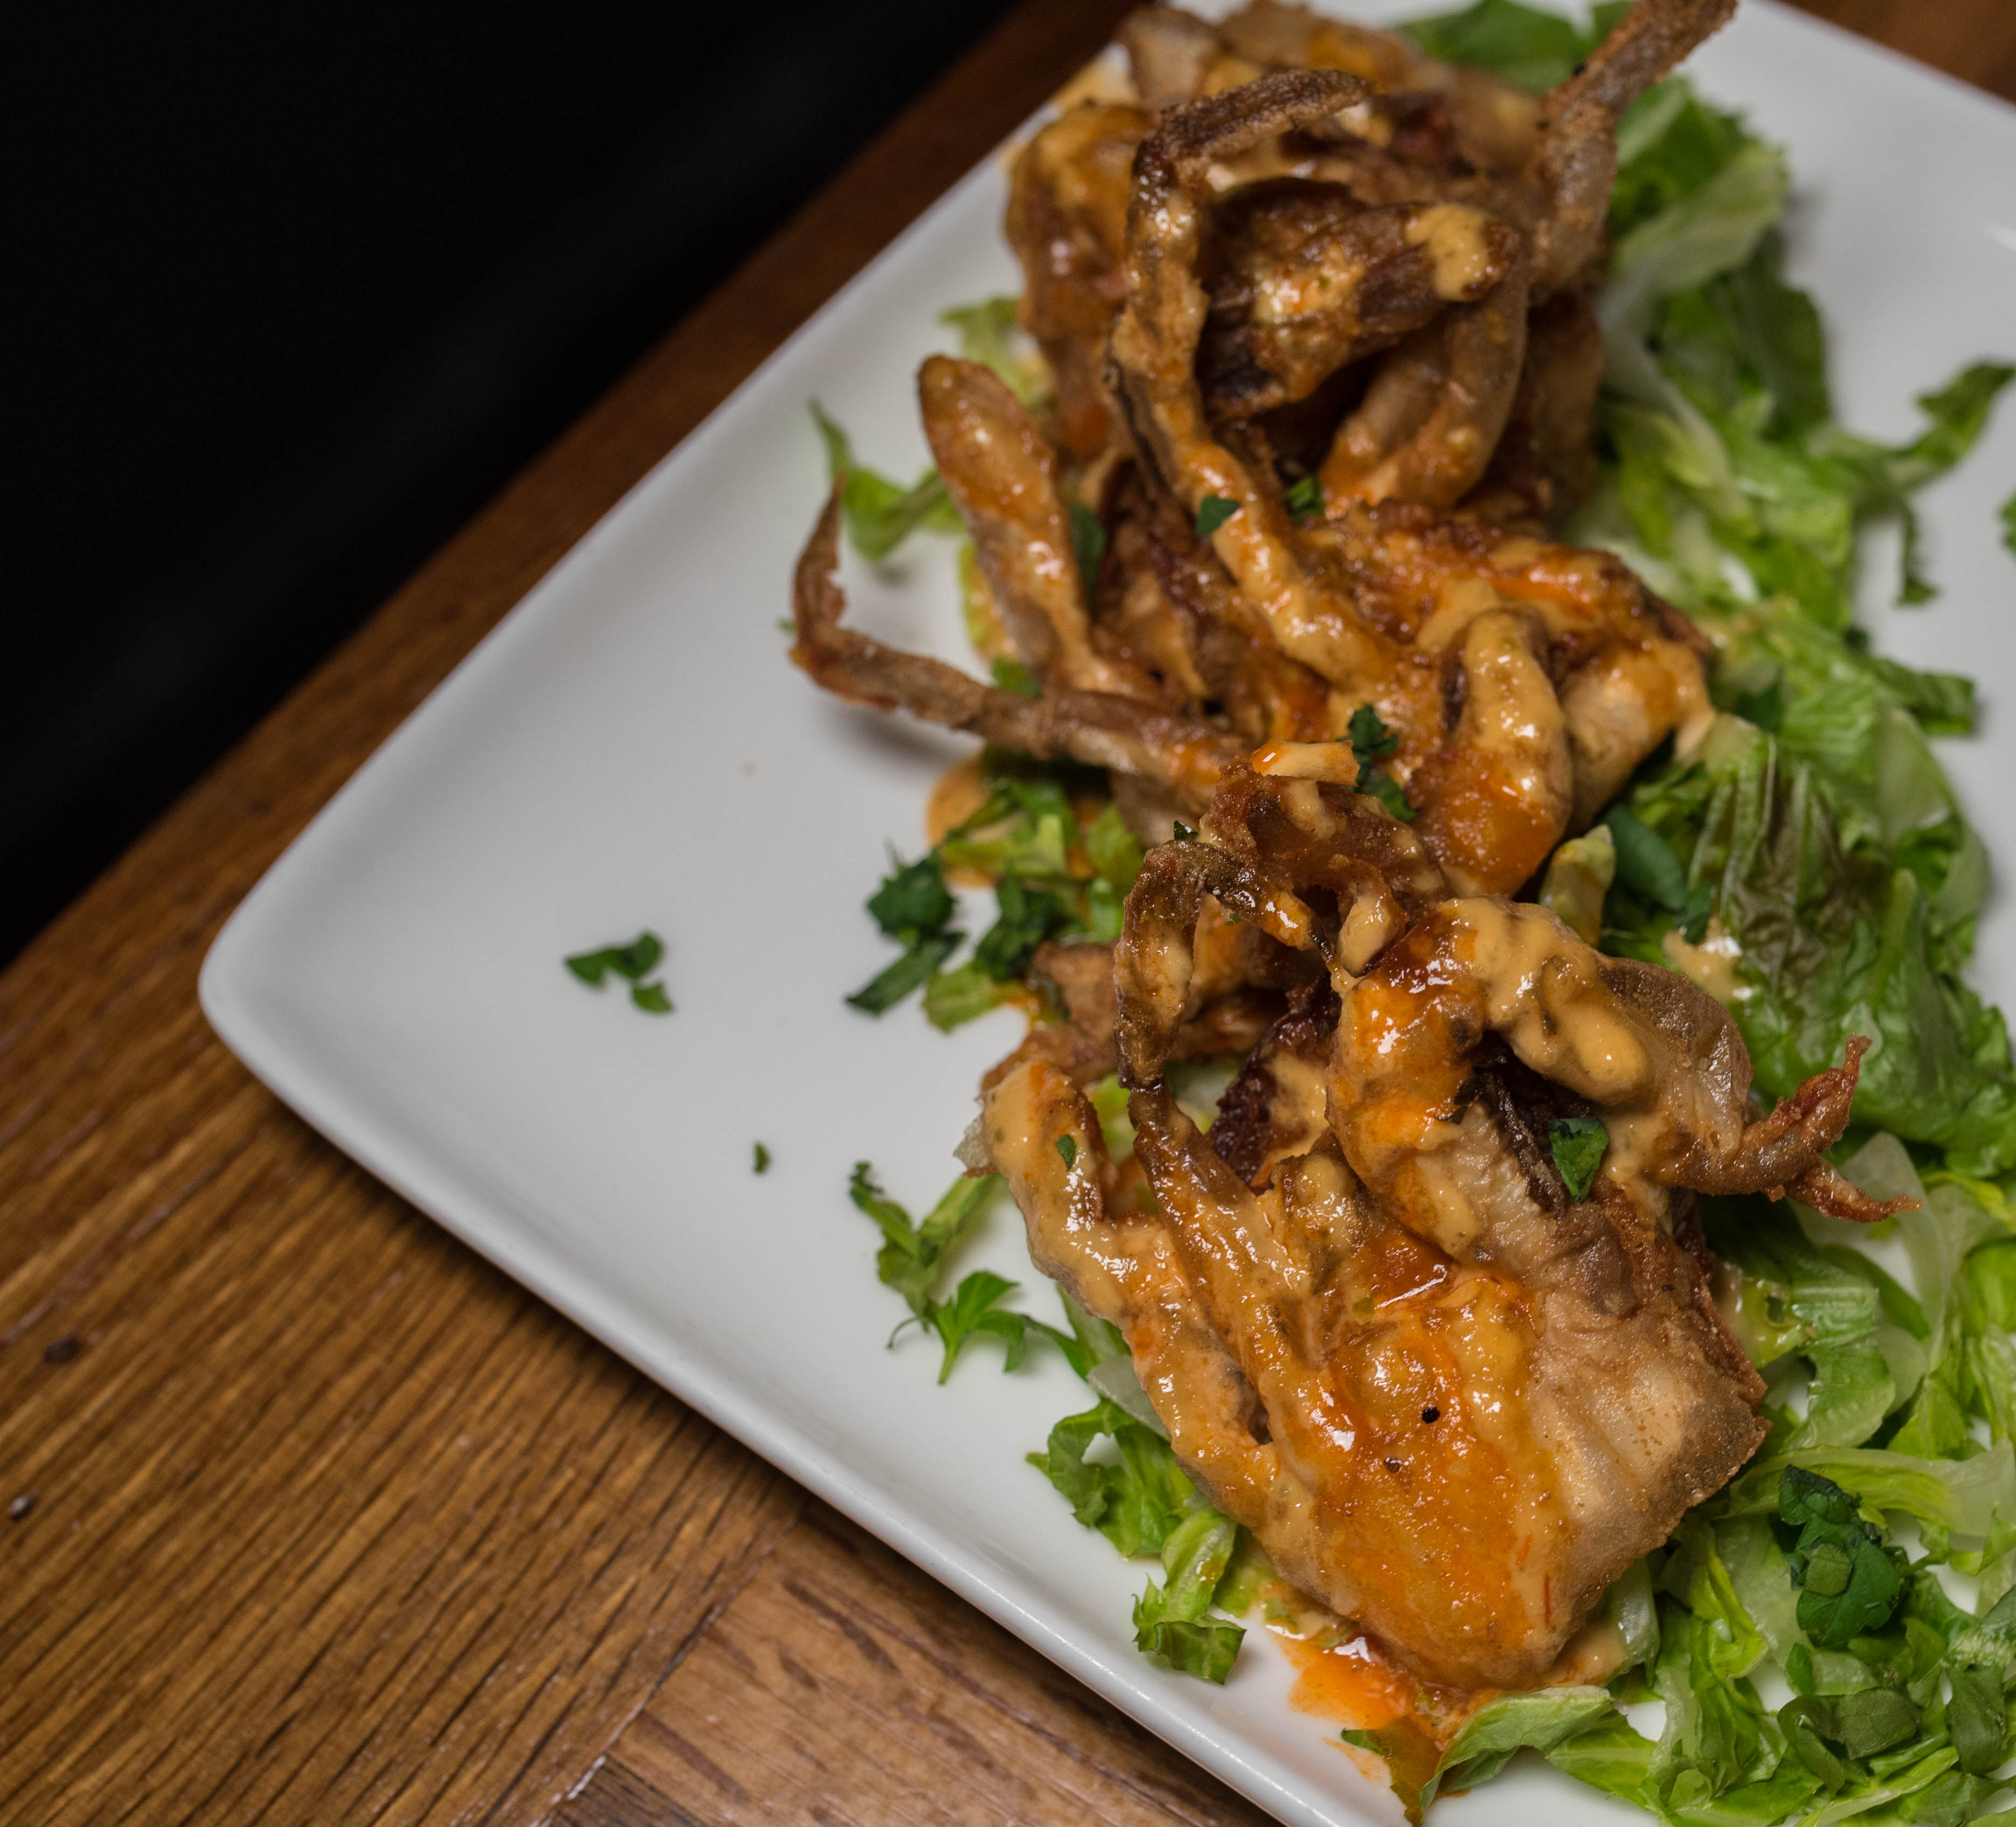 jimmy's soft shell crabs